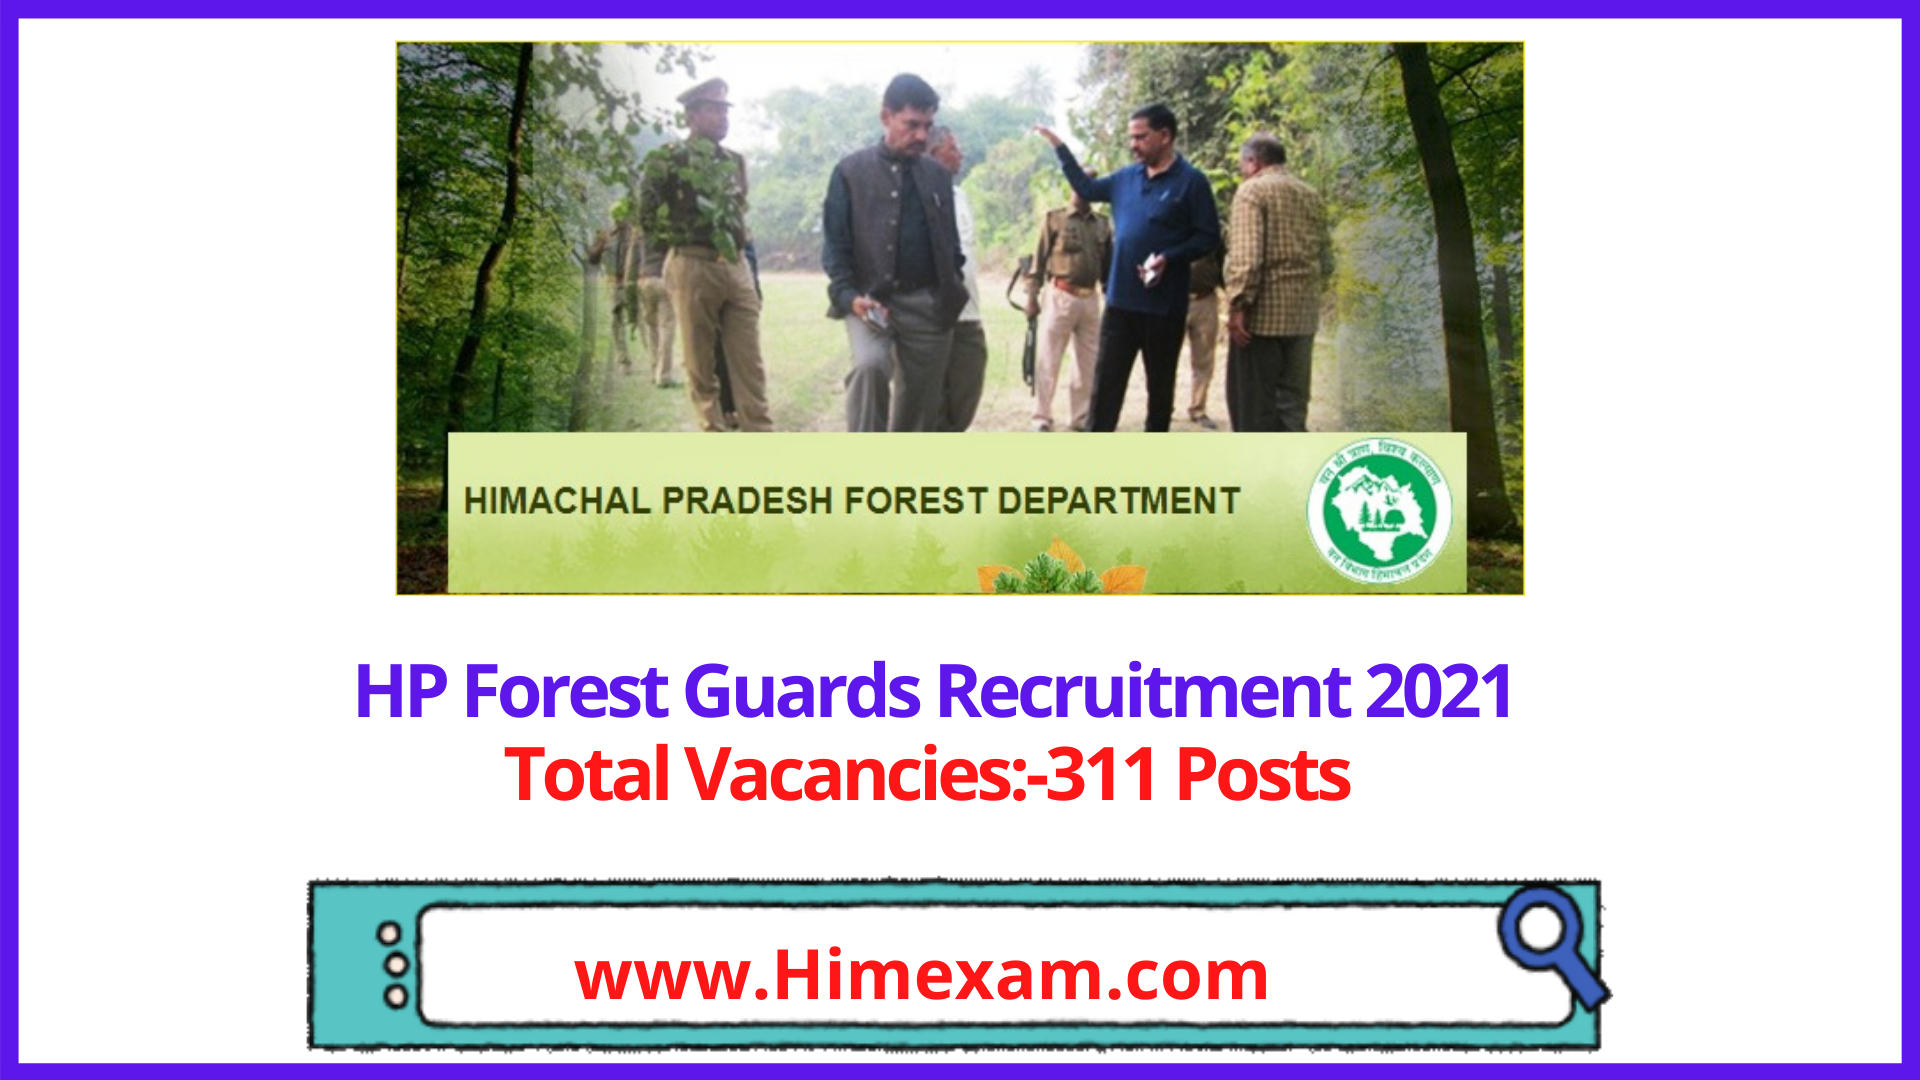 HP Forest Guards Recruitment 2021